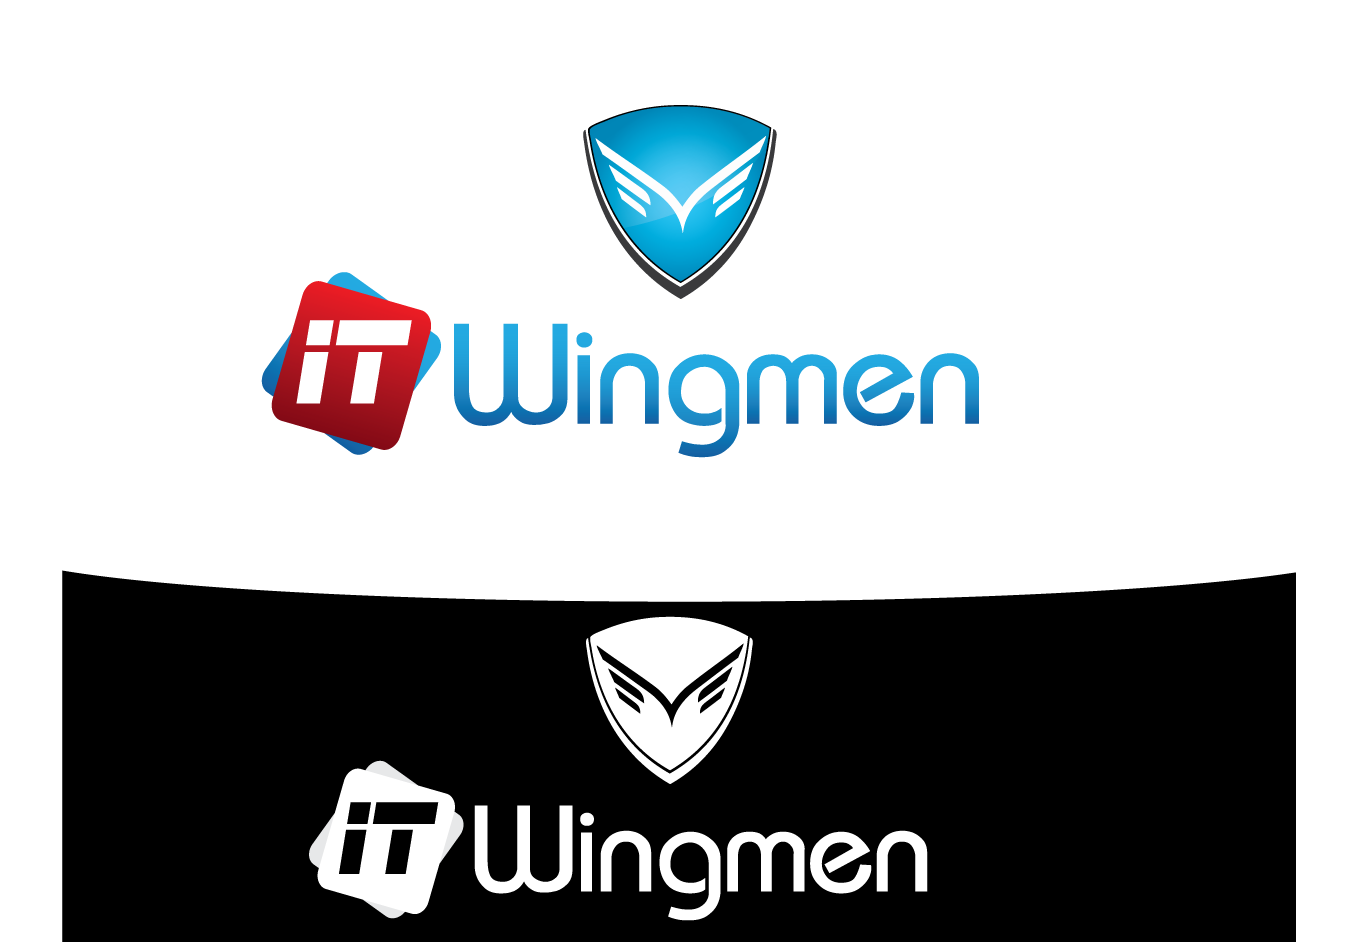 Logo Design by 354studio - Entry No. 63 in the Logo Design Contest New Logo Design for IT Wingmen.